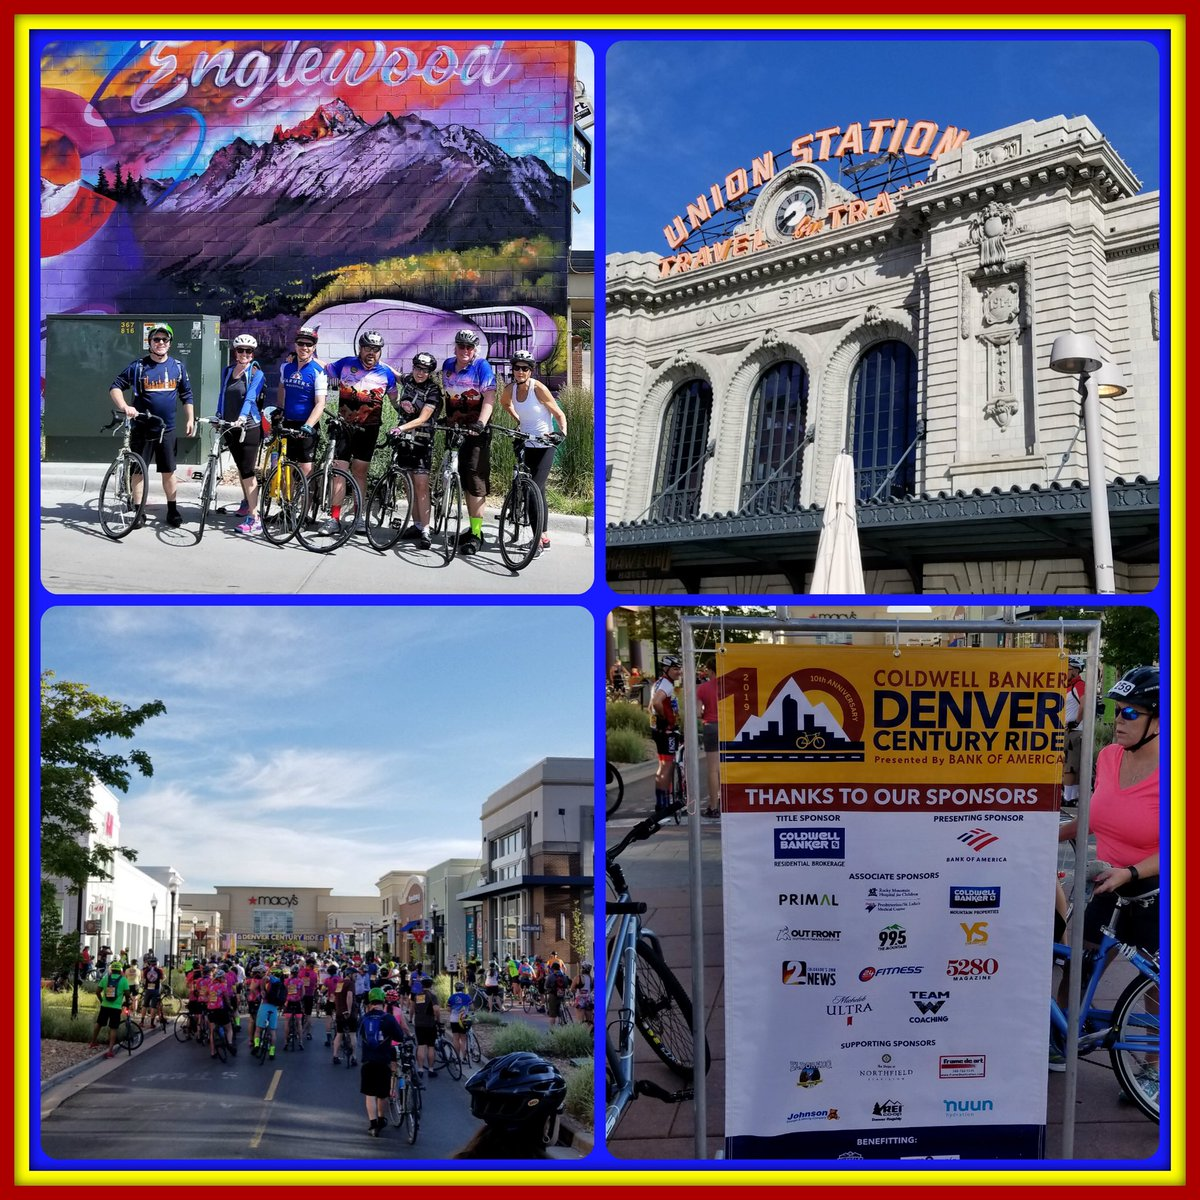 Frame de Art had a great time yesterday at the 10th Annual Denver Century Ride! Our team rode 50 miles around some of the best landmarks, even right past Frame de Art! #DenCenRide #CycleTheCity #Cycling #ColdwellBanker #Denver  @ColdwellBankrCO @VisitDenver @DenversStation